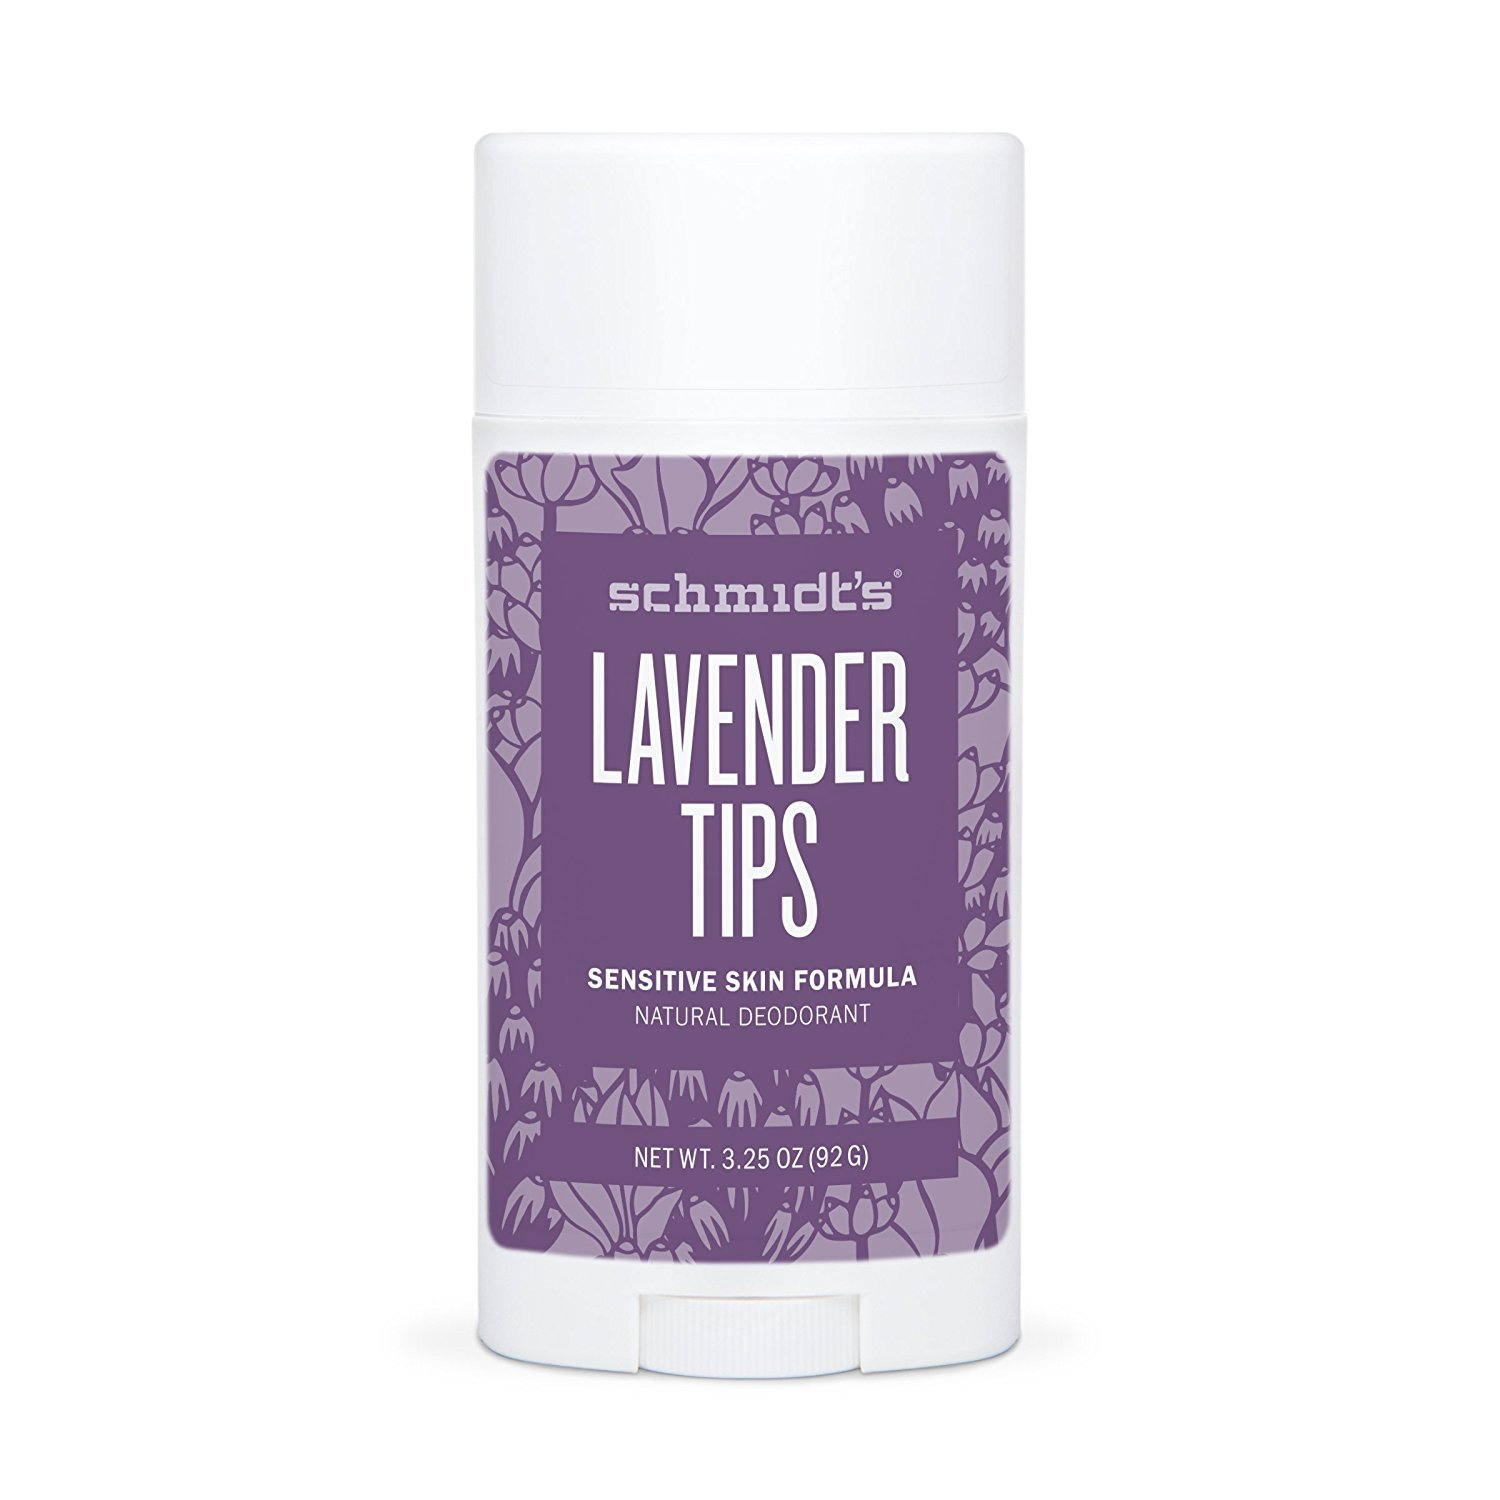 SCHMIDTS - Natural Deodorant Stick for Sensitive Skin Lavender Tips - 3.25 oz. (92 g): Amazon.es: Salud y cuidado personal